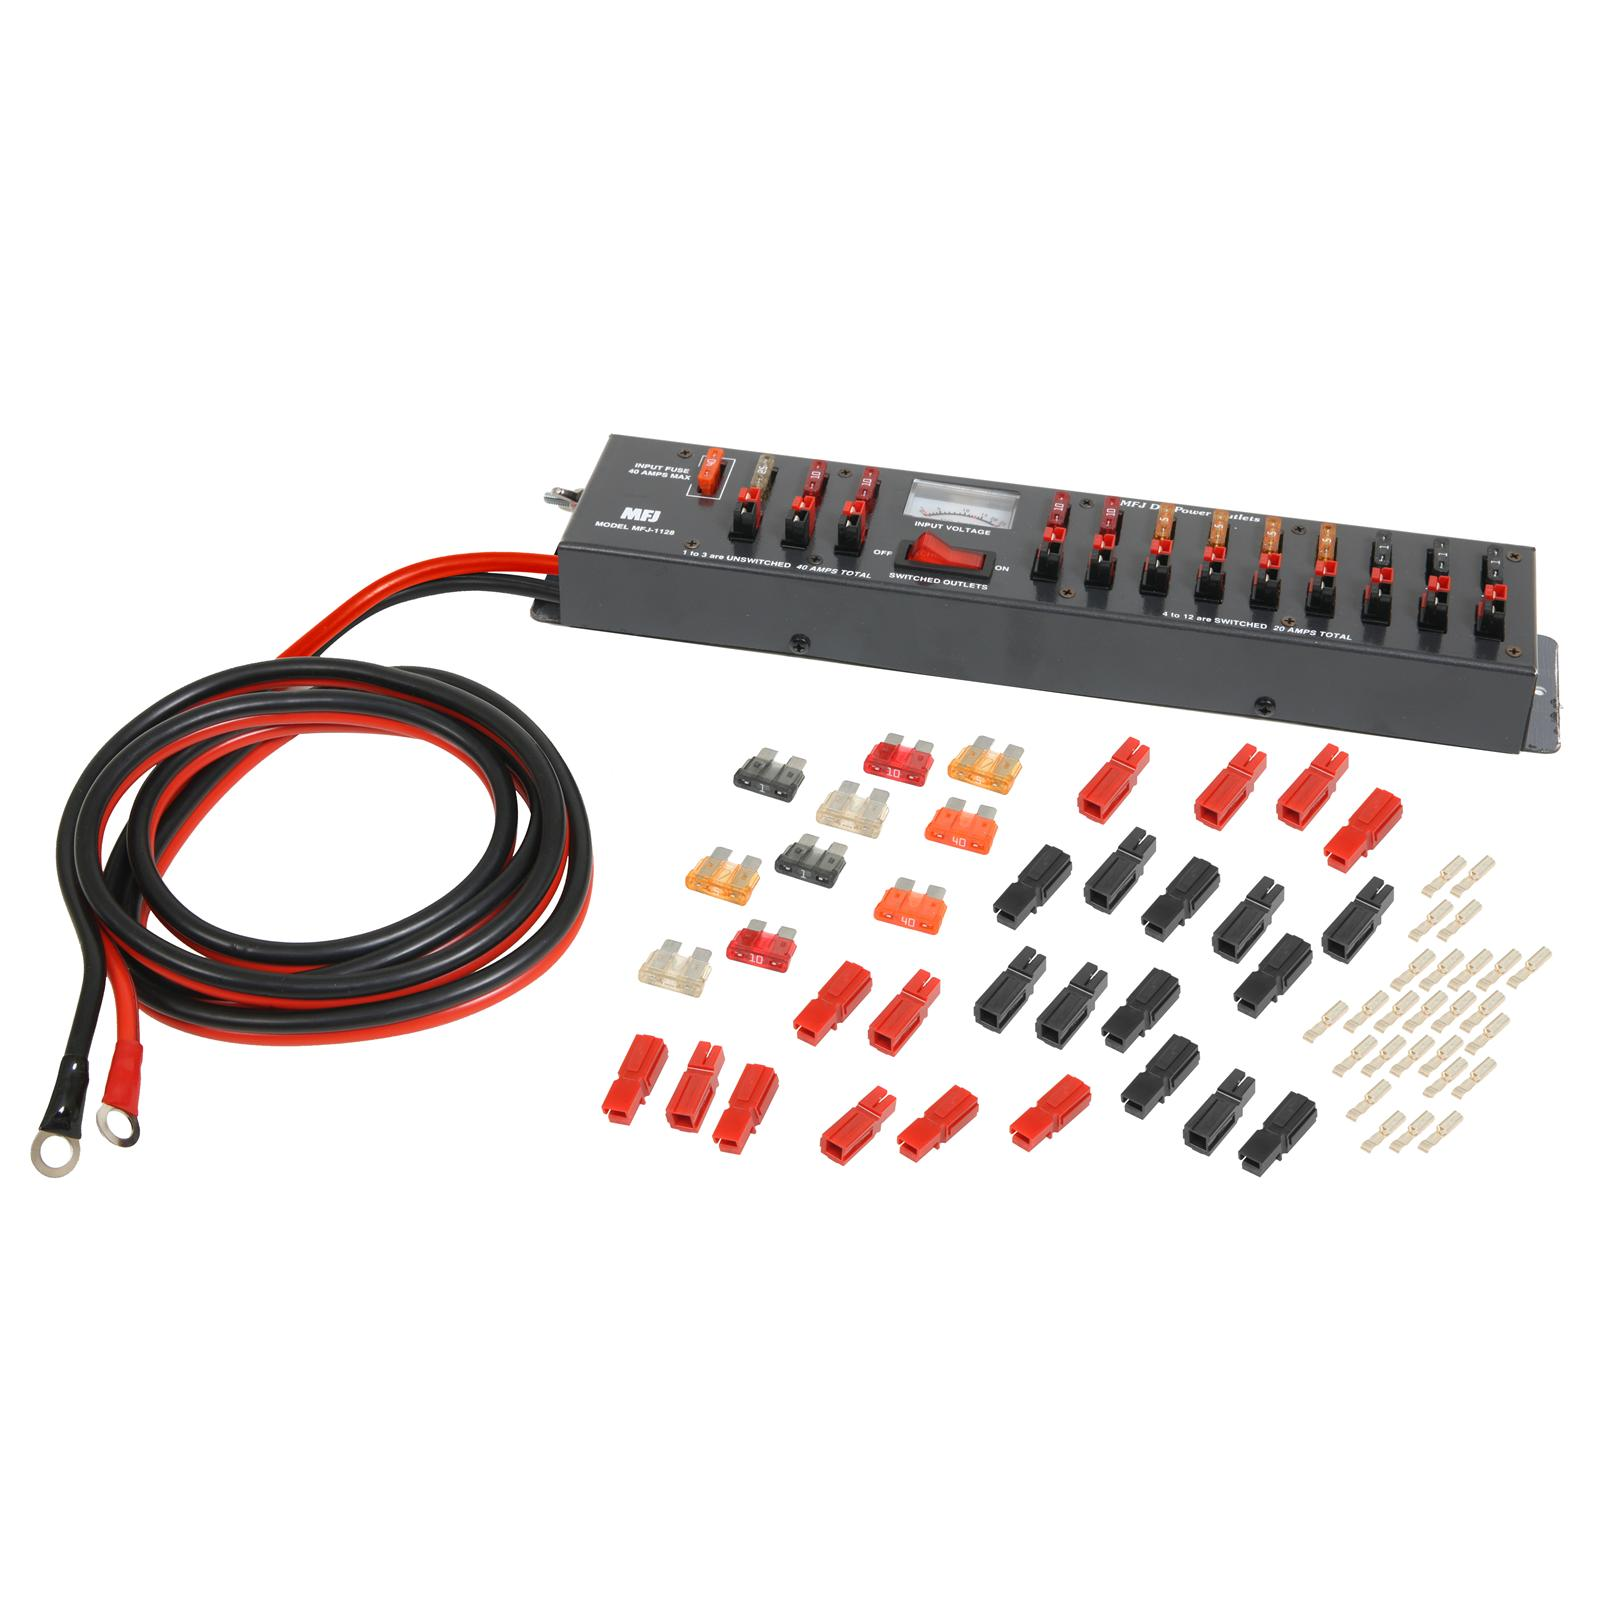 hight resolution of mfj dc multiple outlet panels mfj 1128 free shipping on most orders over 99 at dx engineering